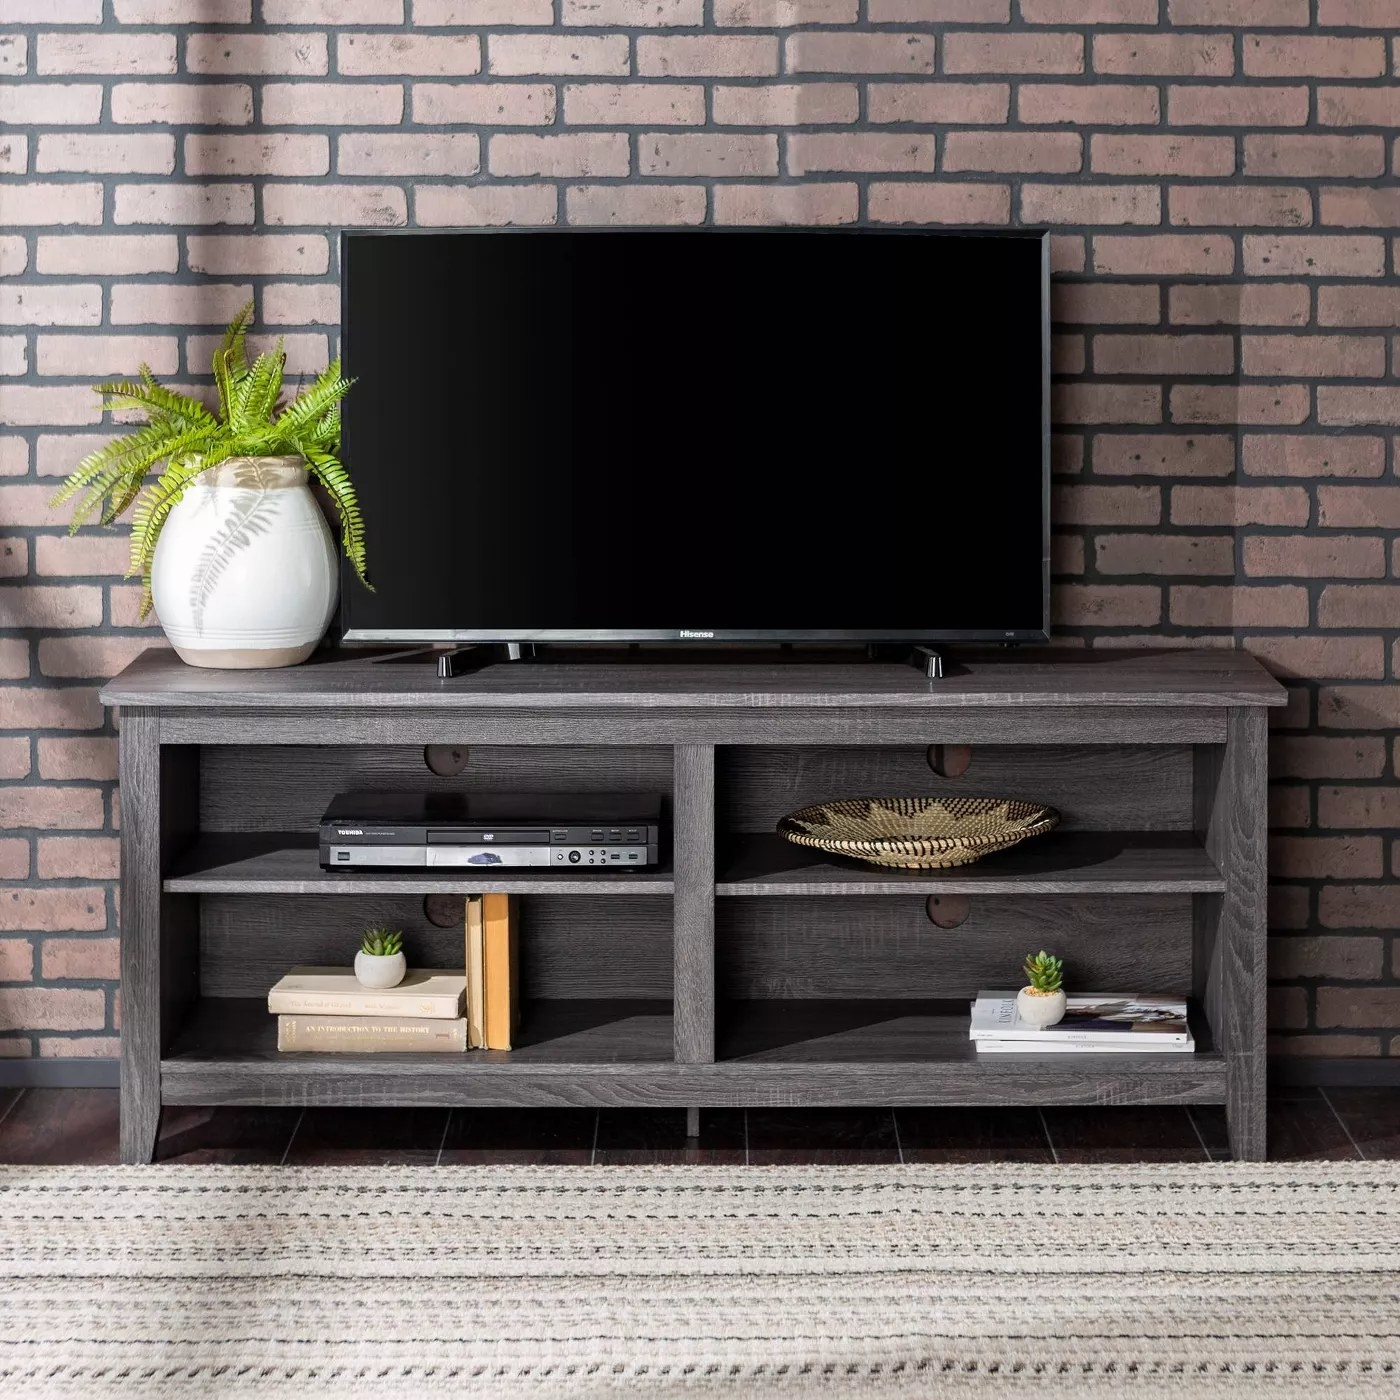 The wooden TV stand with four open shelves supporting a large flatscreen TV